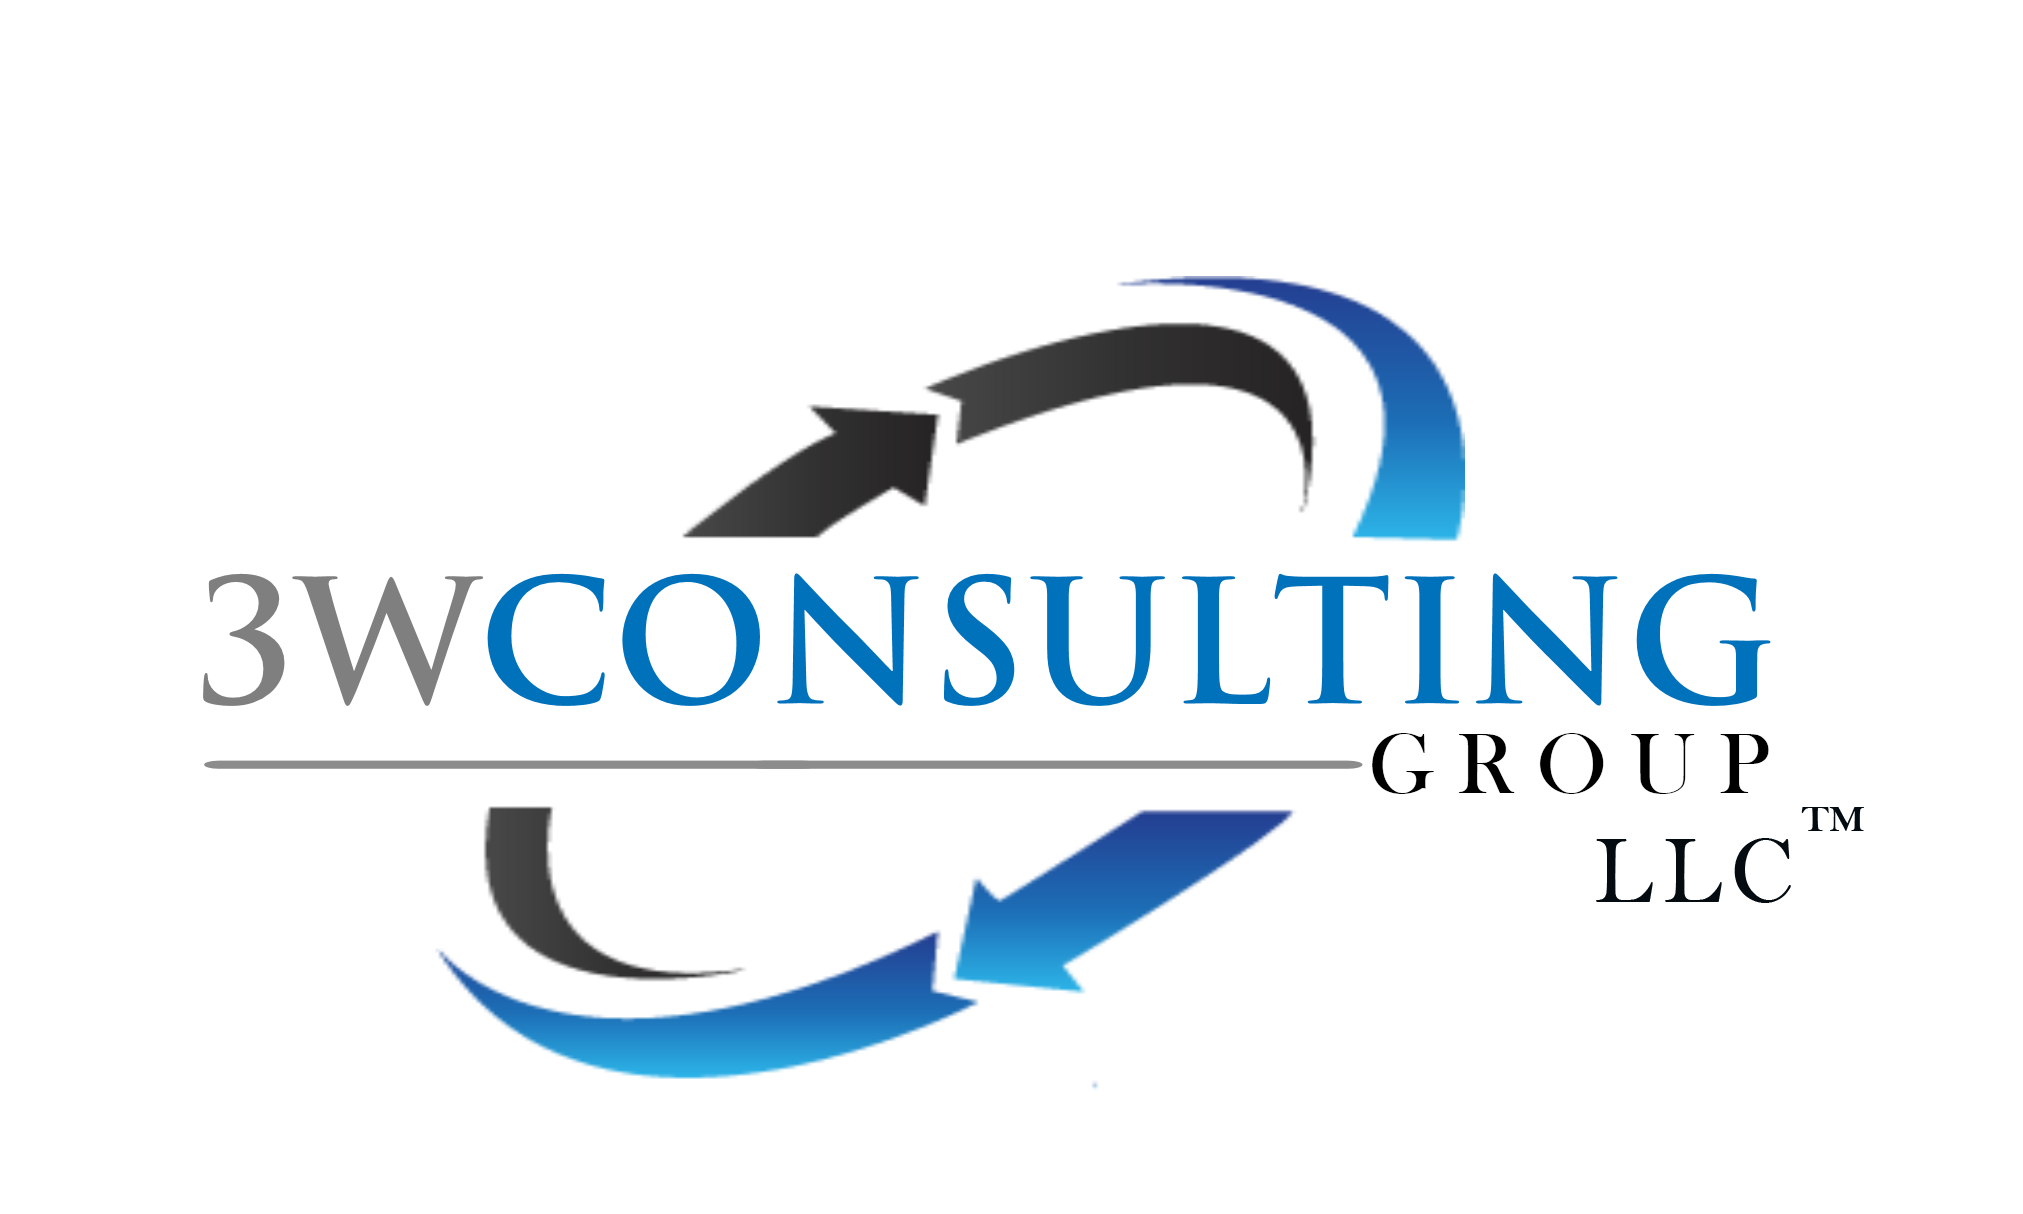 3W Consulting Group LLC